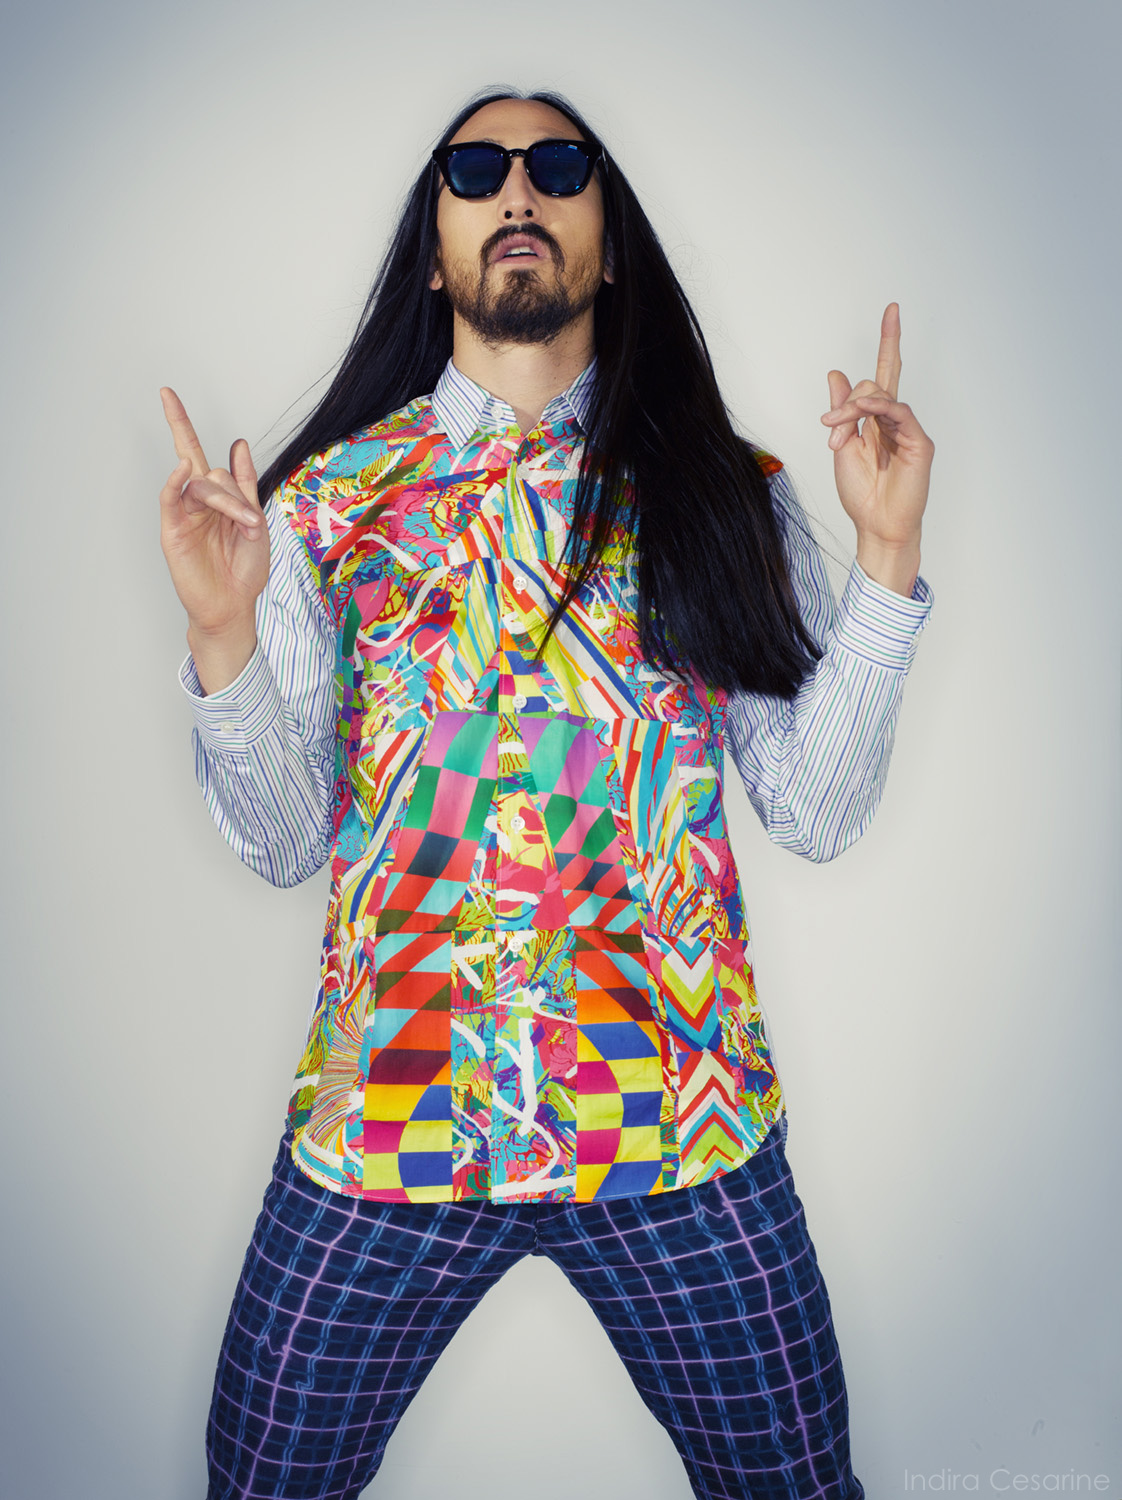 Steve-Aoki-The-Untitled-Magazine-Photography-by-Indira-Cesarine-013.jpg